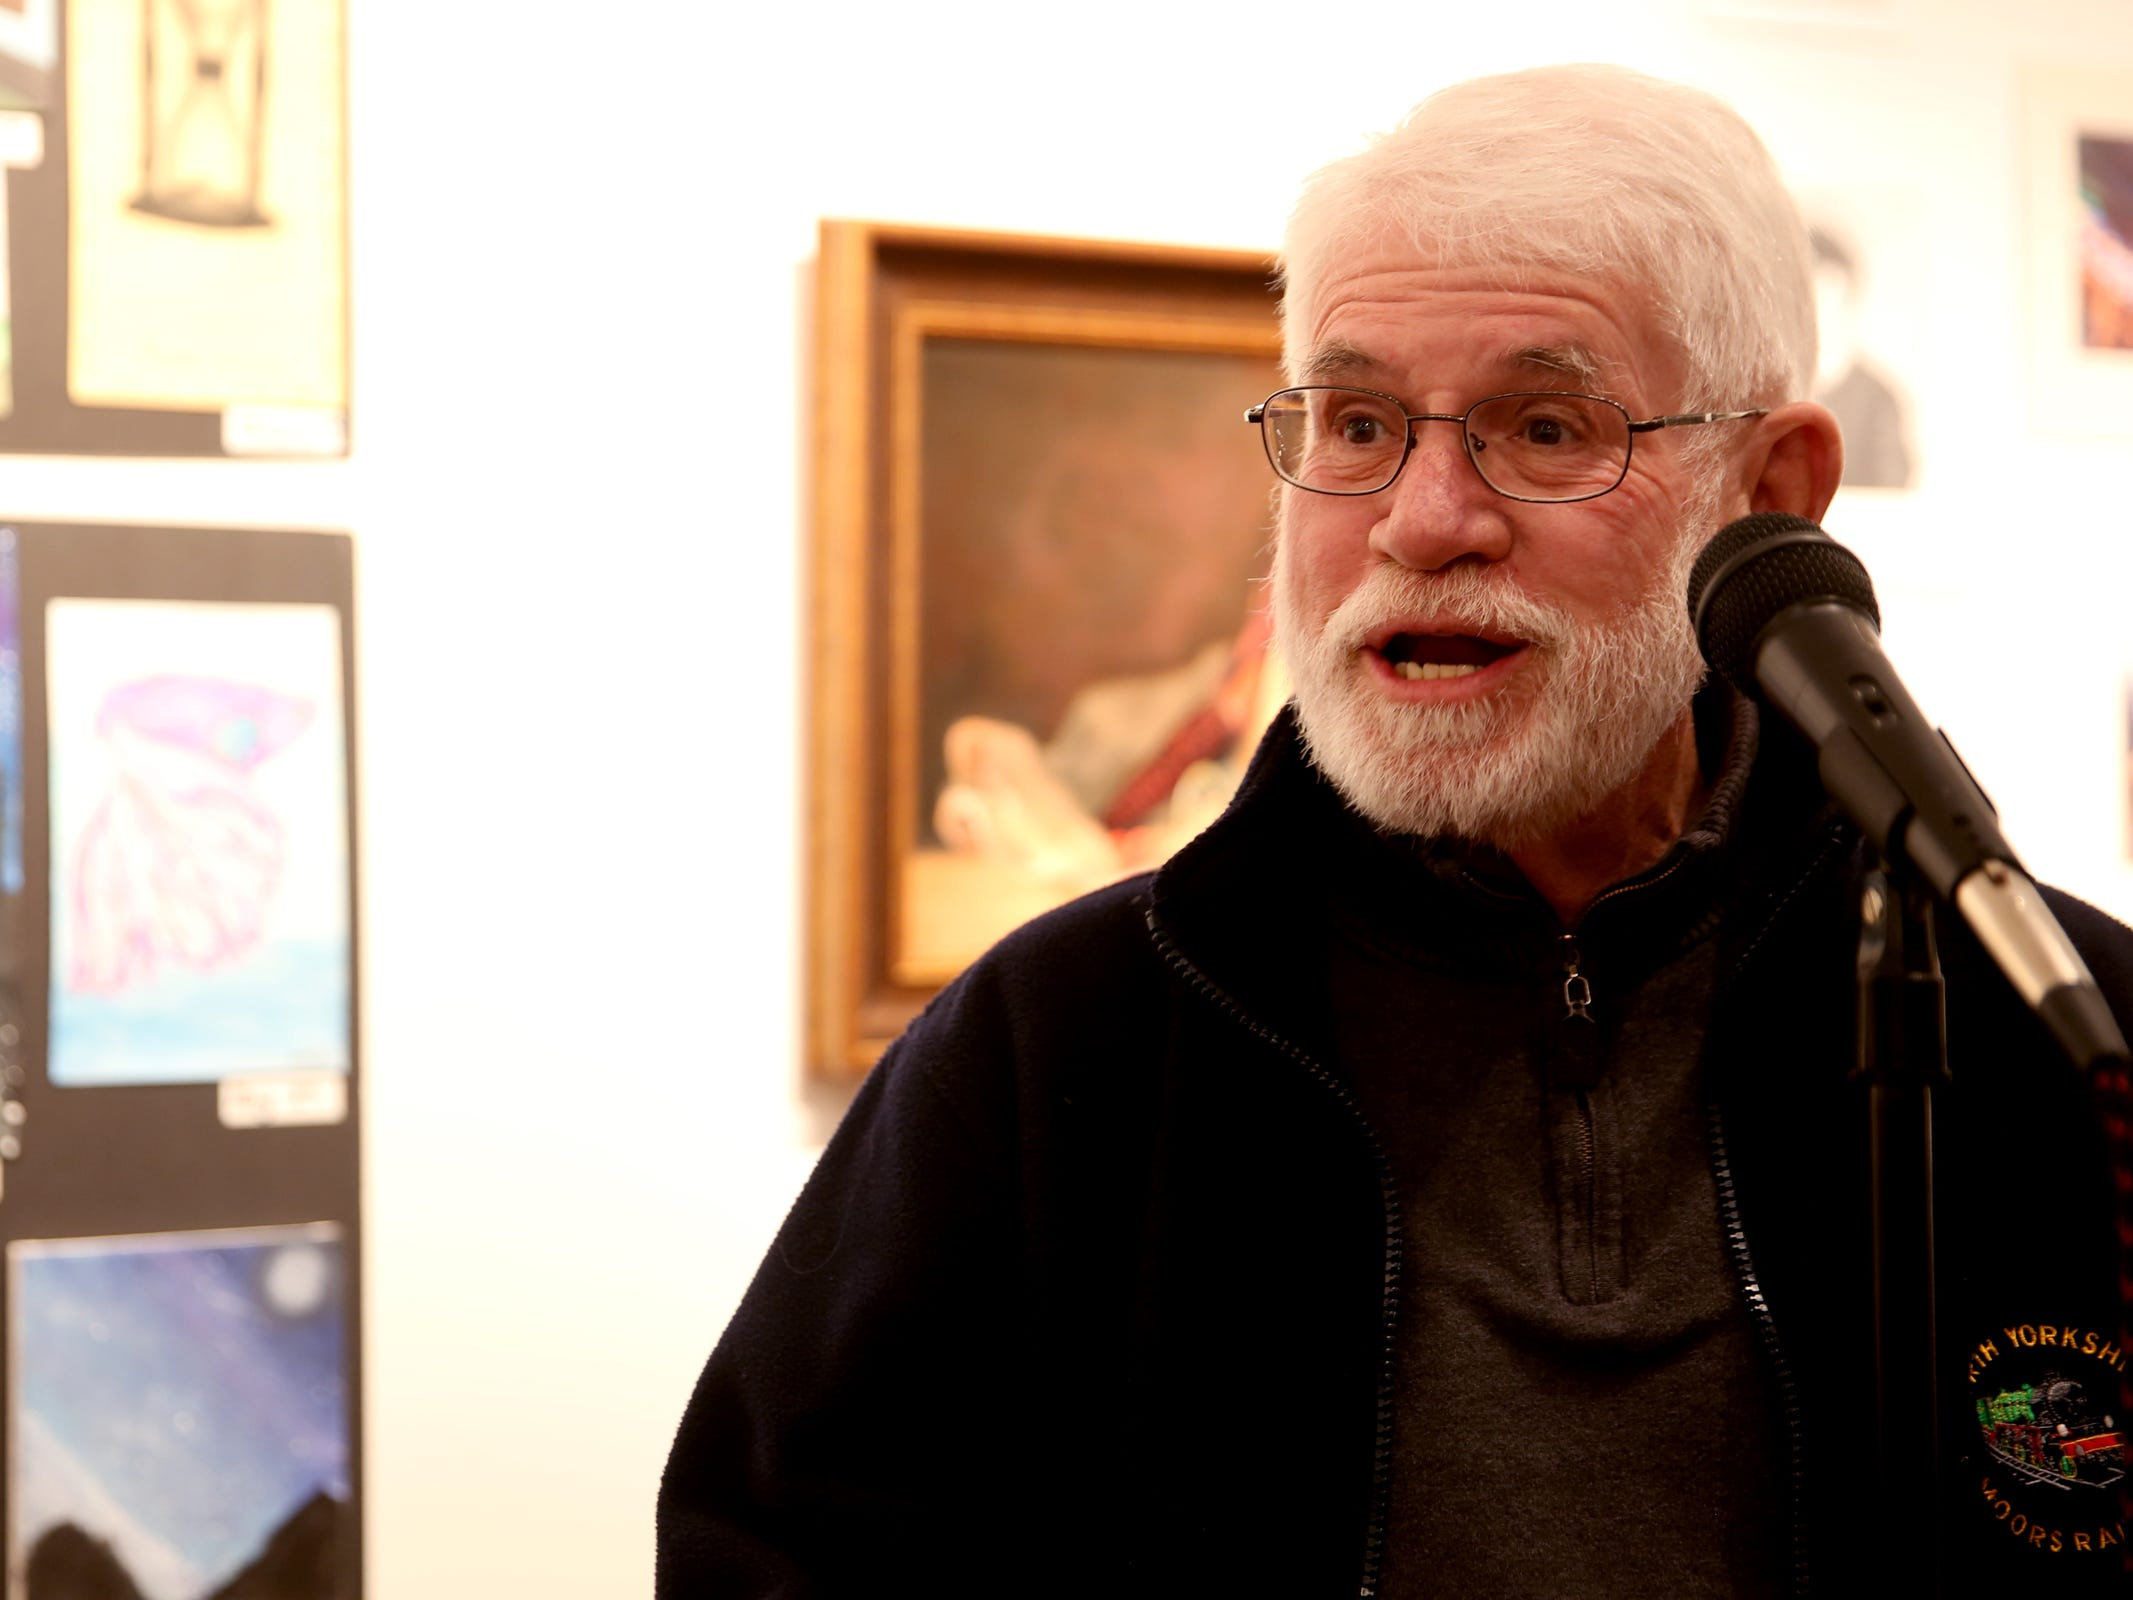 Mayor Chuck Bennett presents an award during the 10th annual Young Artists' Showcase at the Bush Barn Art Center in Salem on March 9, 2019. The exhibit features artwork by more than 400 students in Marion, Polk and Yamhill counties and runs through April 20.